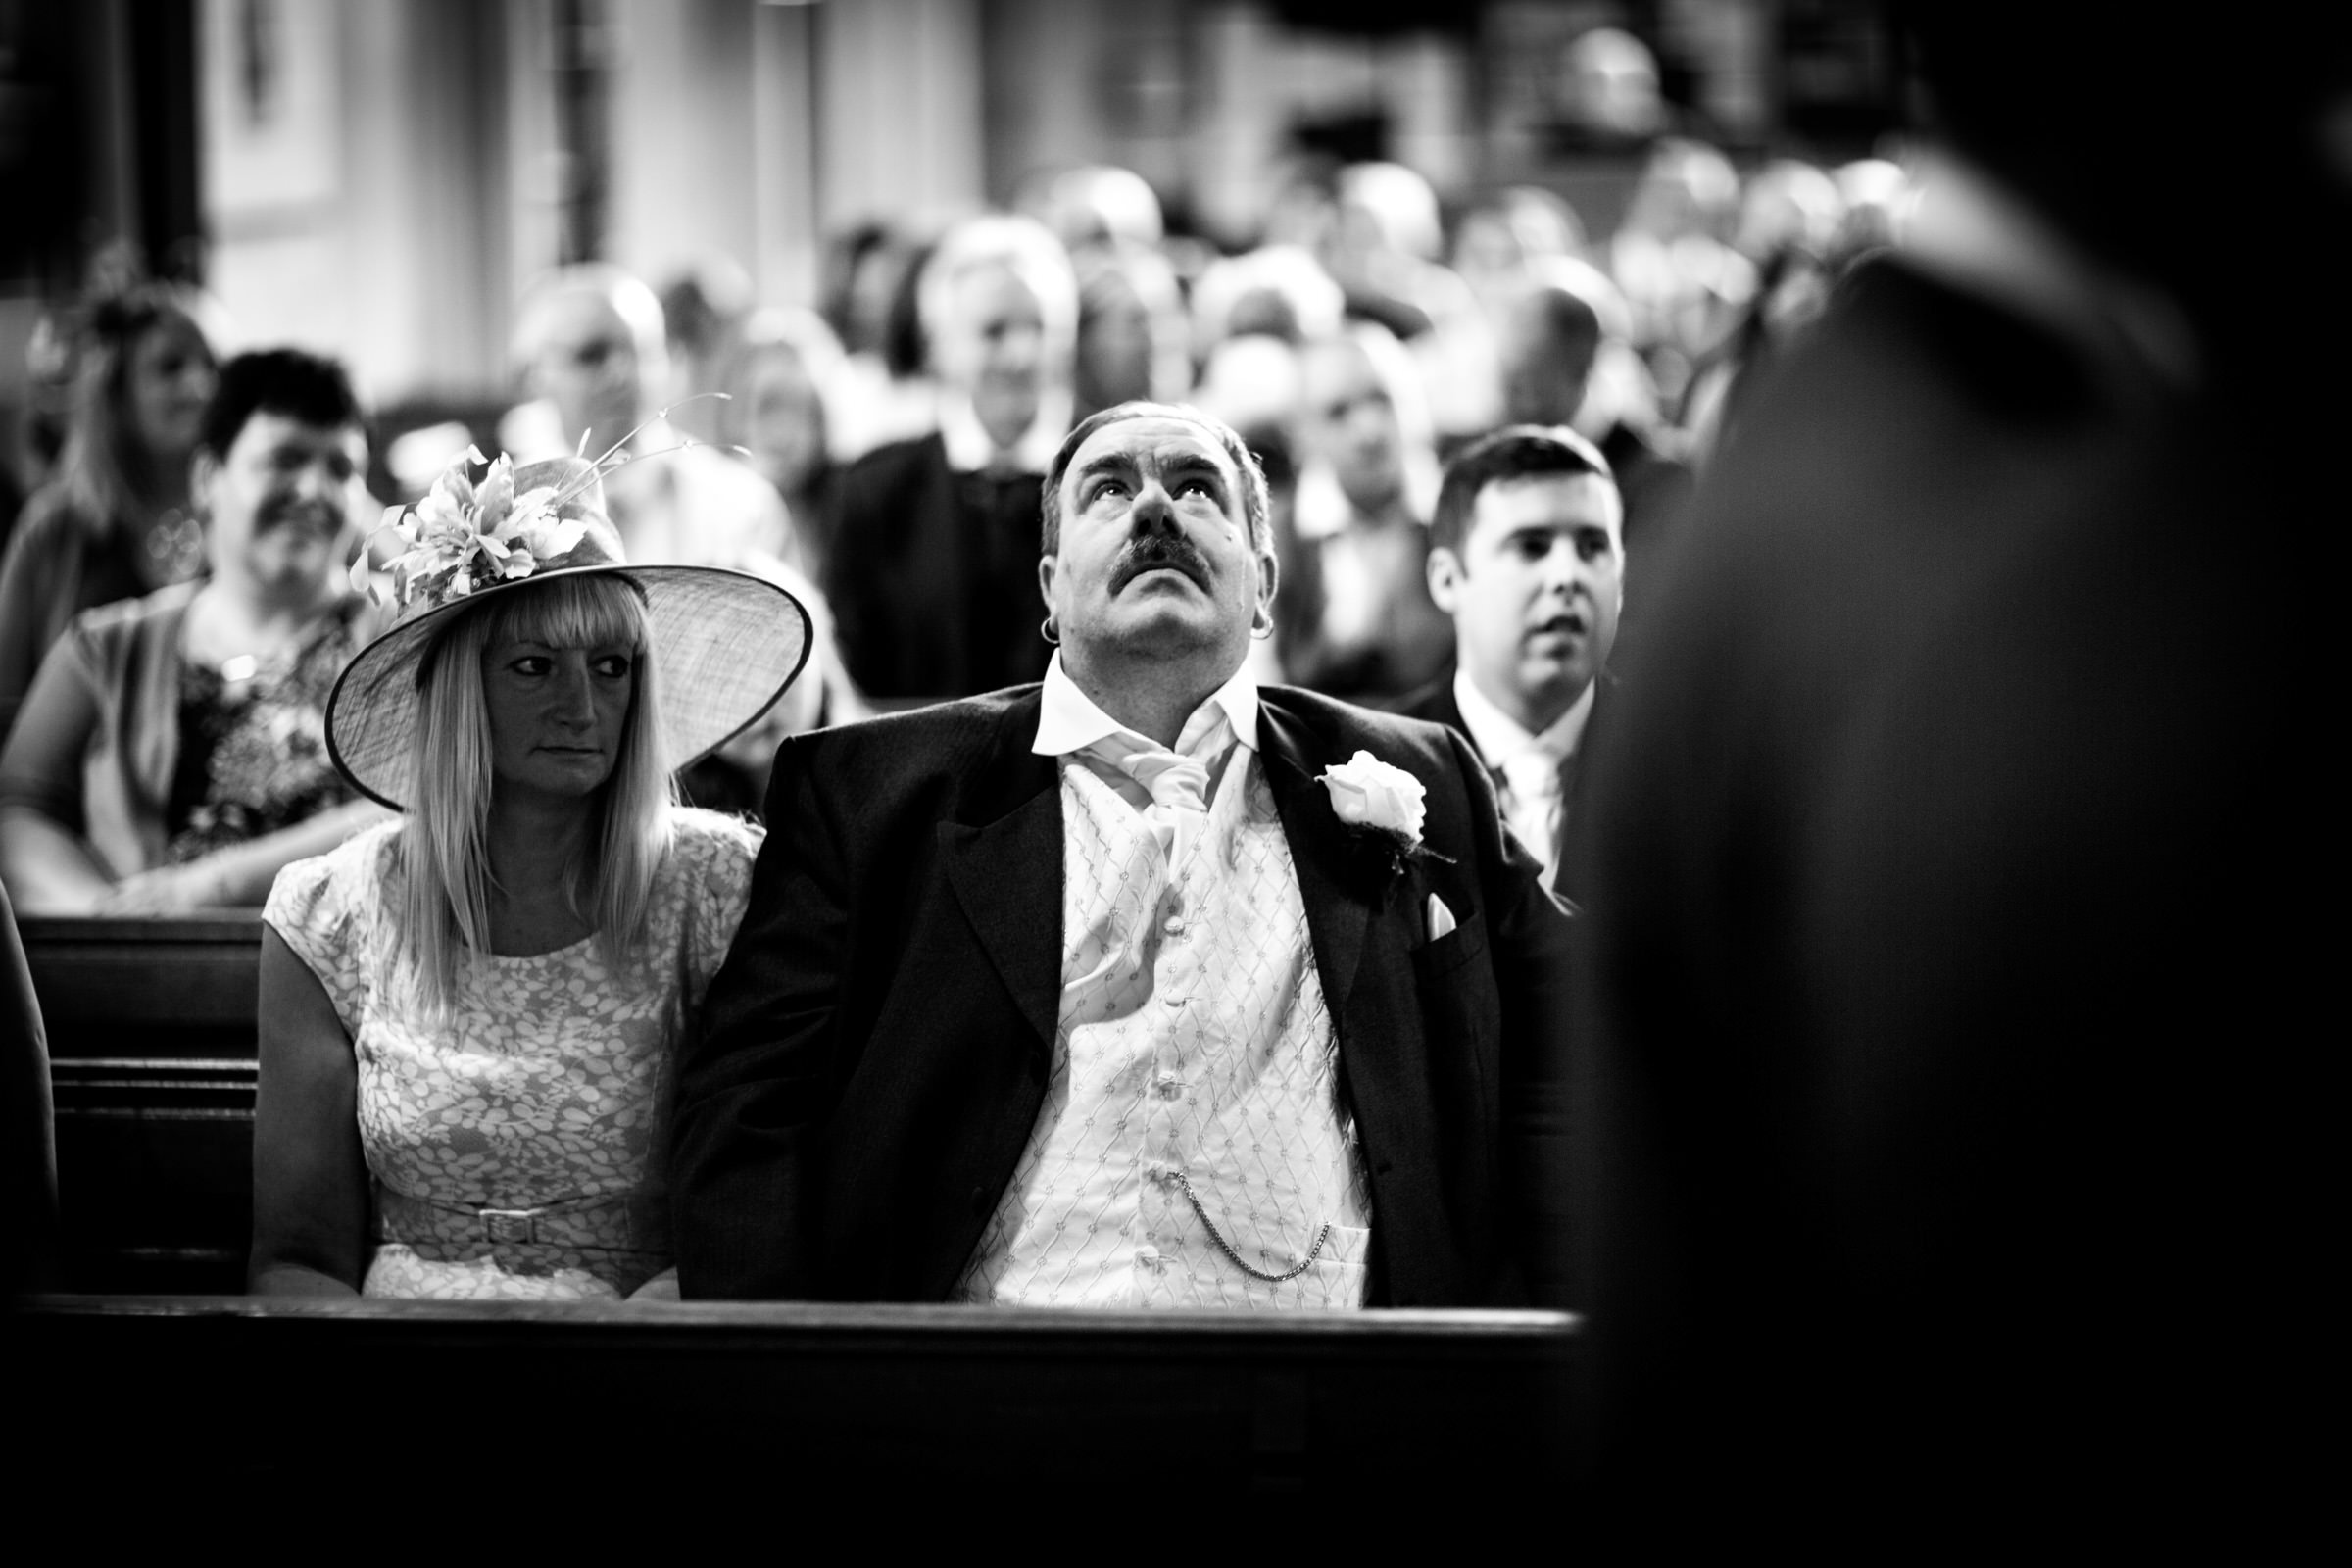 Wedding at Trinity Church in Sutton, London 011.jpg